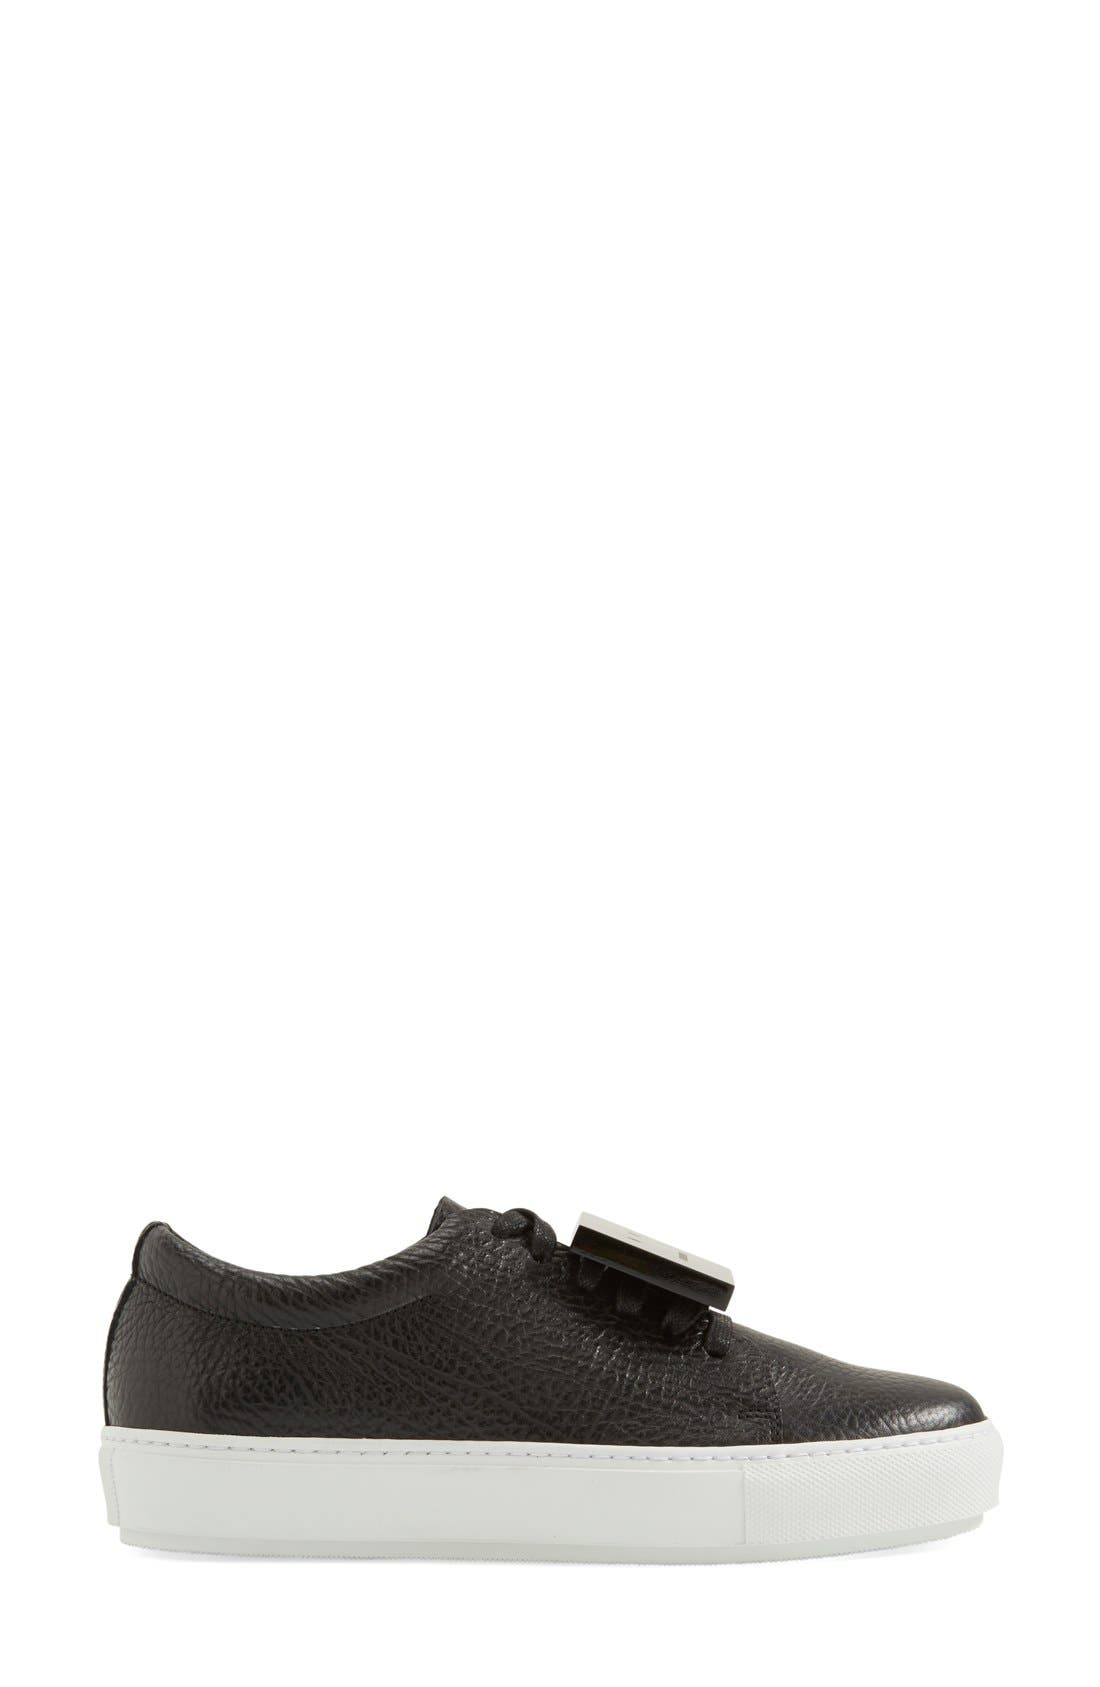 Adriana - Grain Leather Sneaker,                             Alternate thumbnail 4, color,                             Black Leather